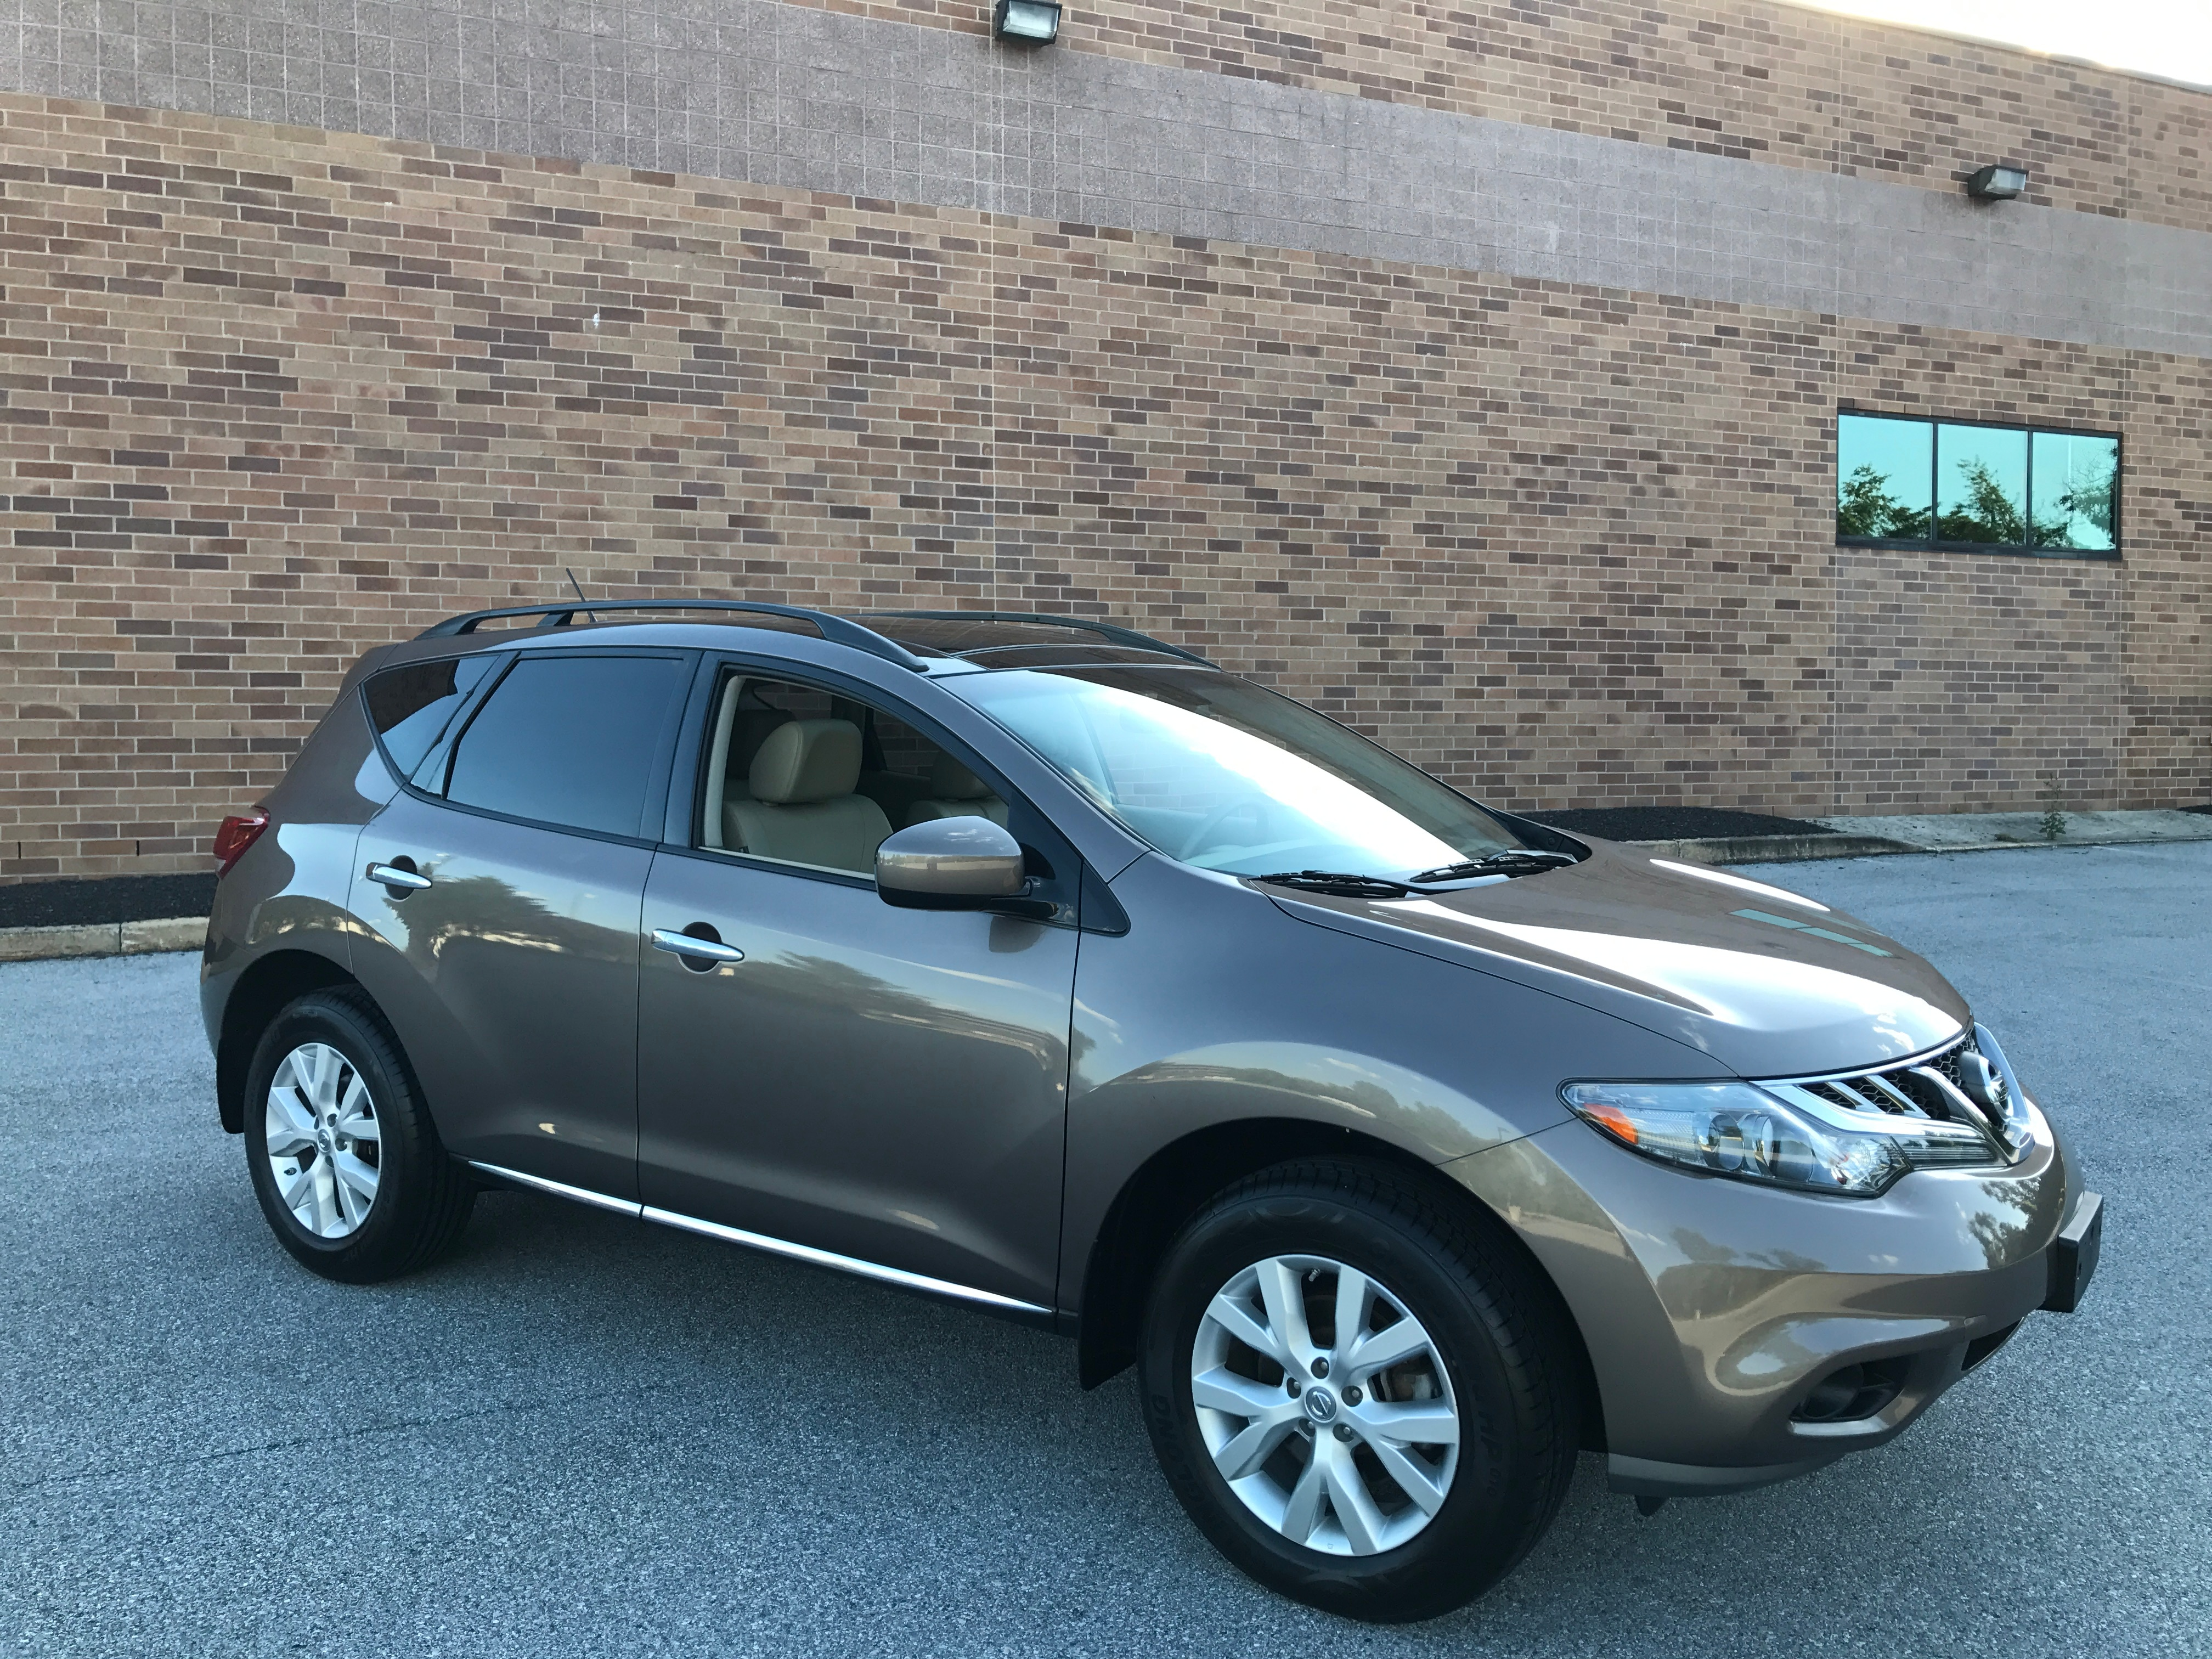 2014 Nissan Murano SL AWD Leather/Heated Seats/Pano Roof/Rear Camera SUV